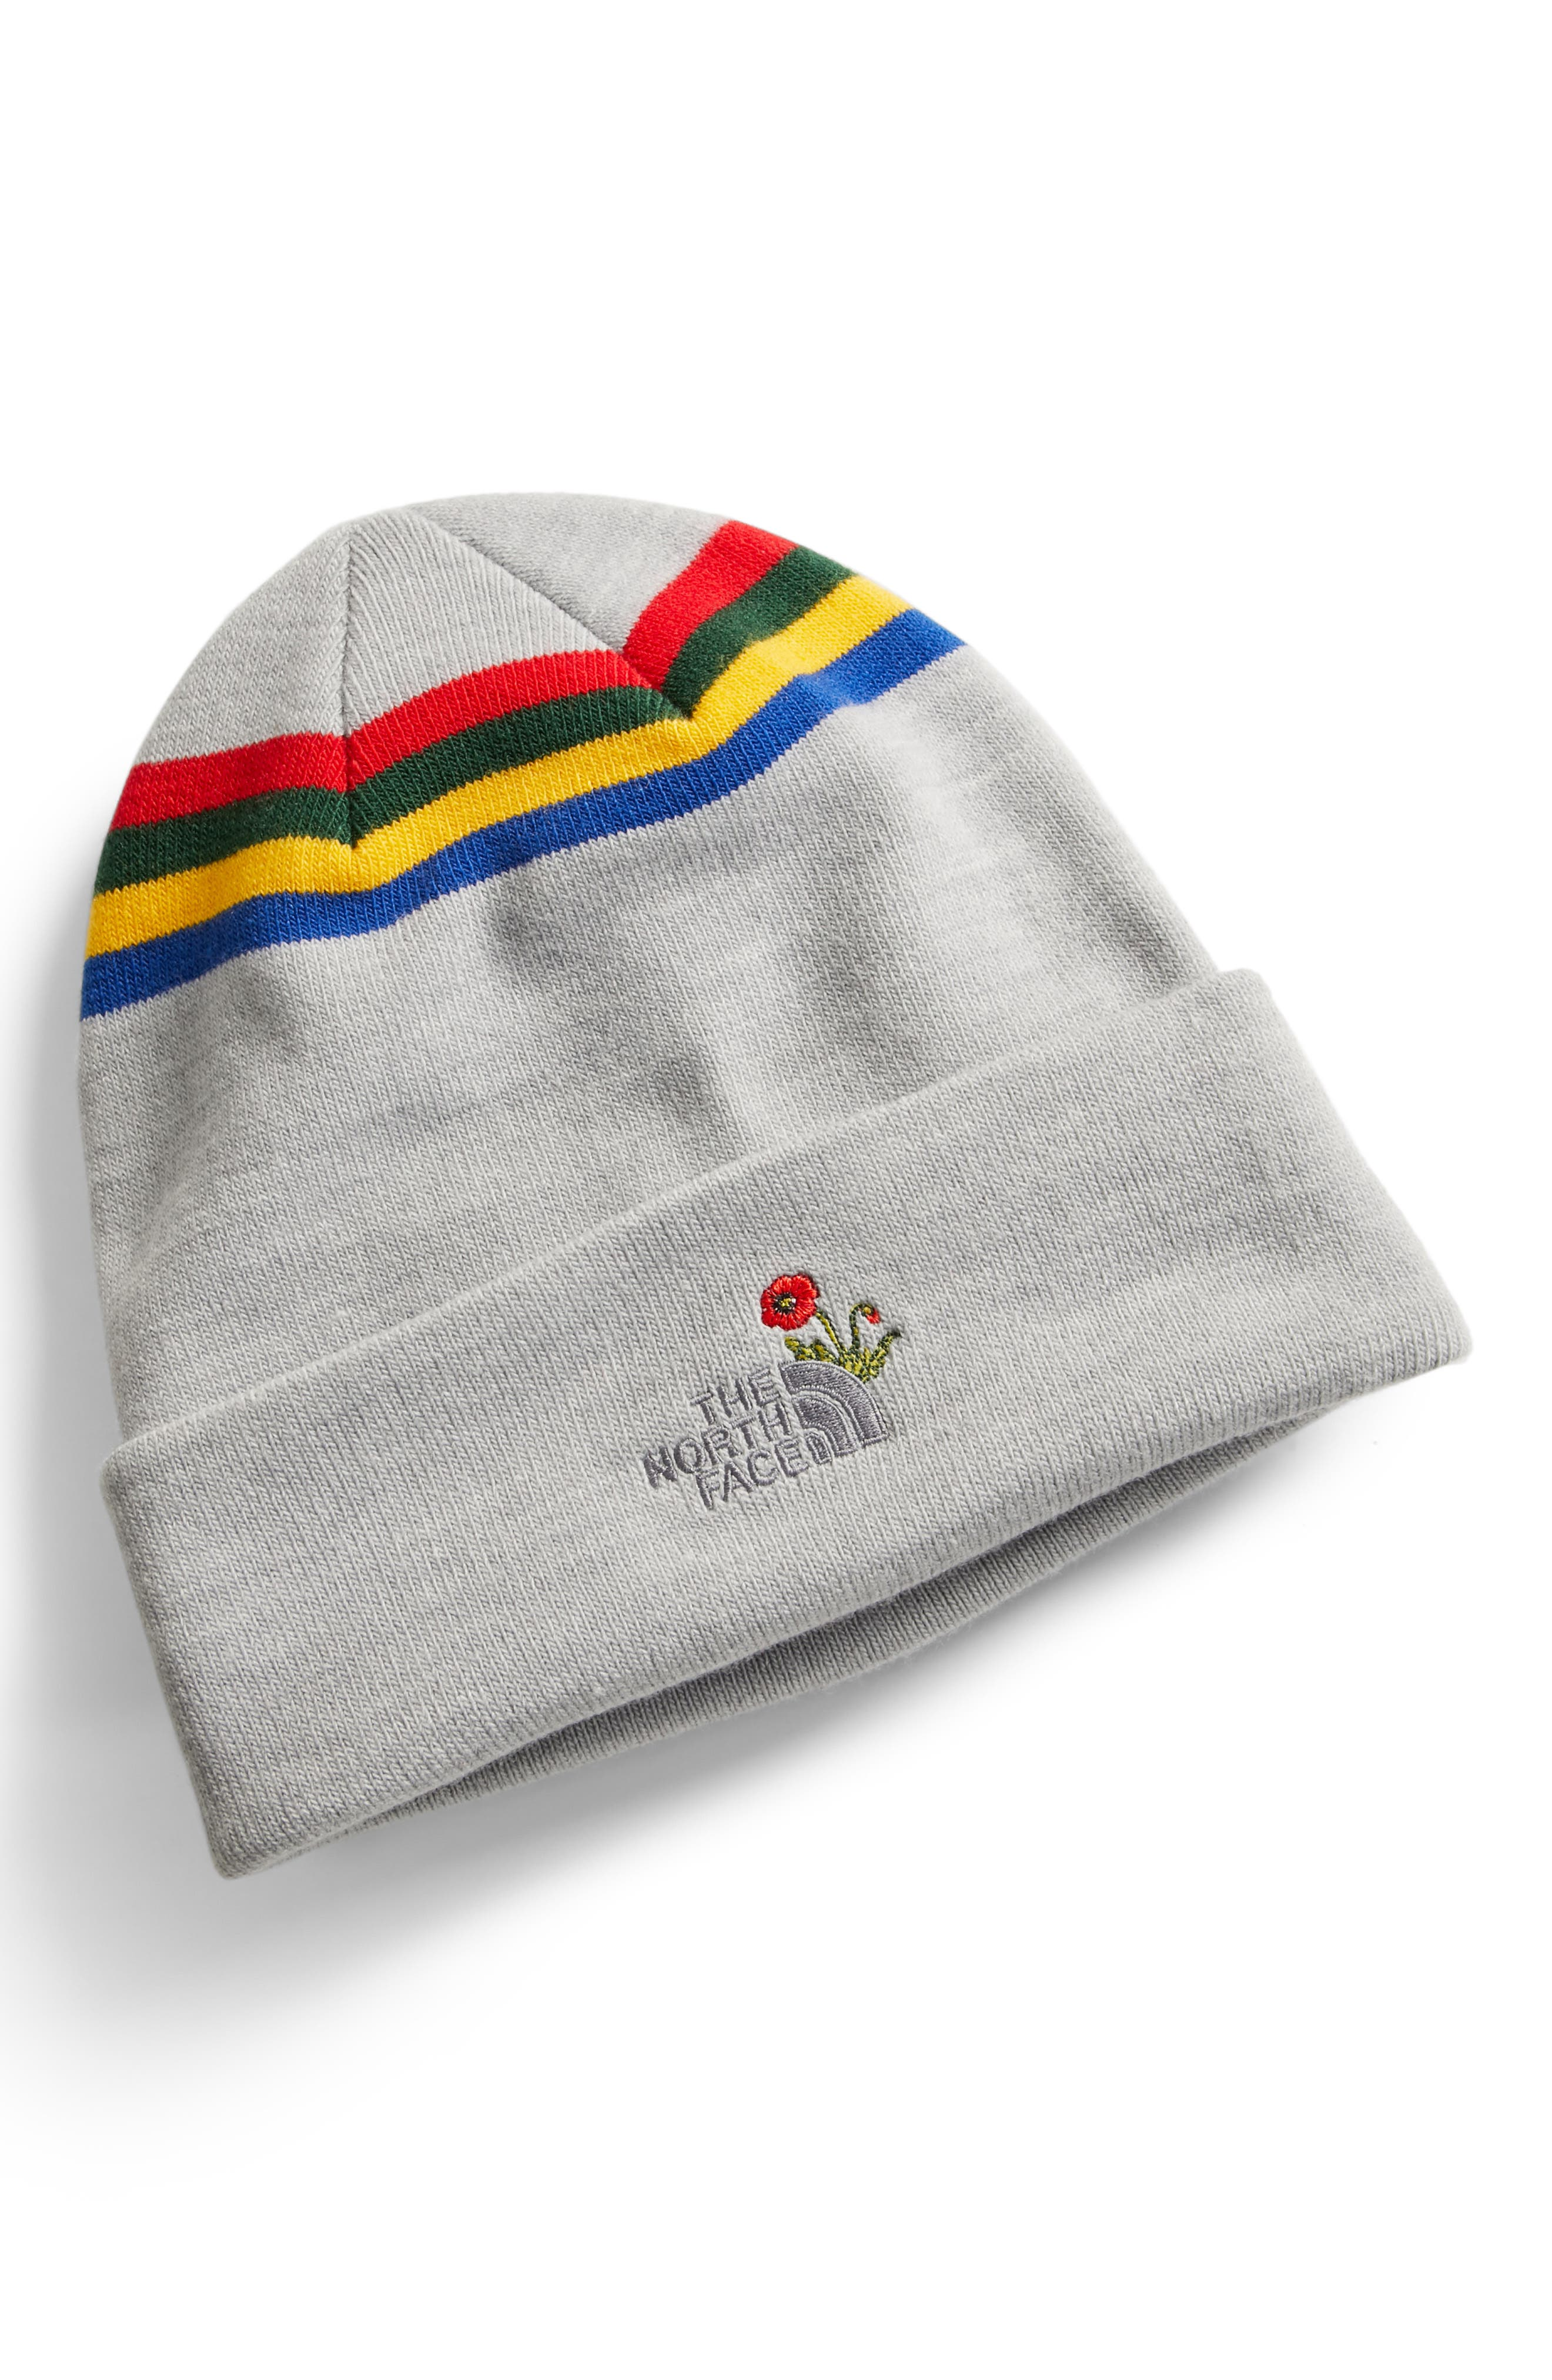 Main Image - The North Face Poppy Dock Workers Beanie